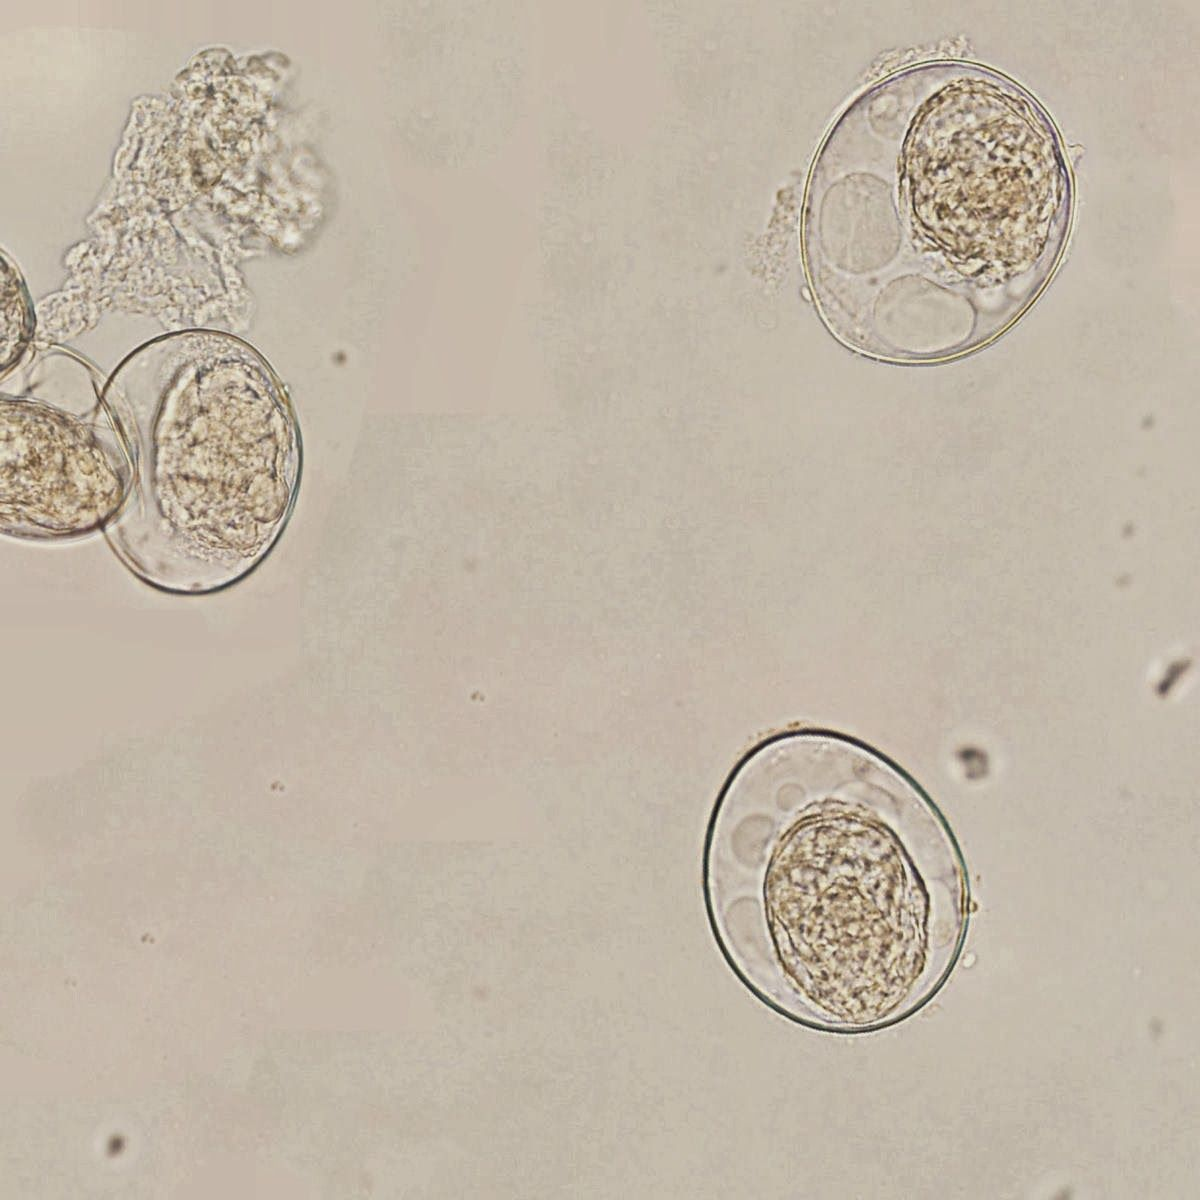 Sunday Parasitology Quiz - Can you identify these particles